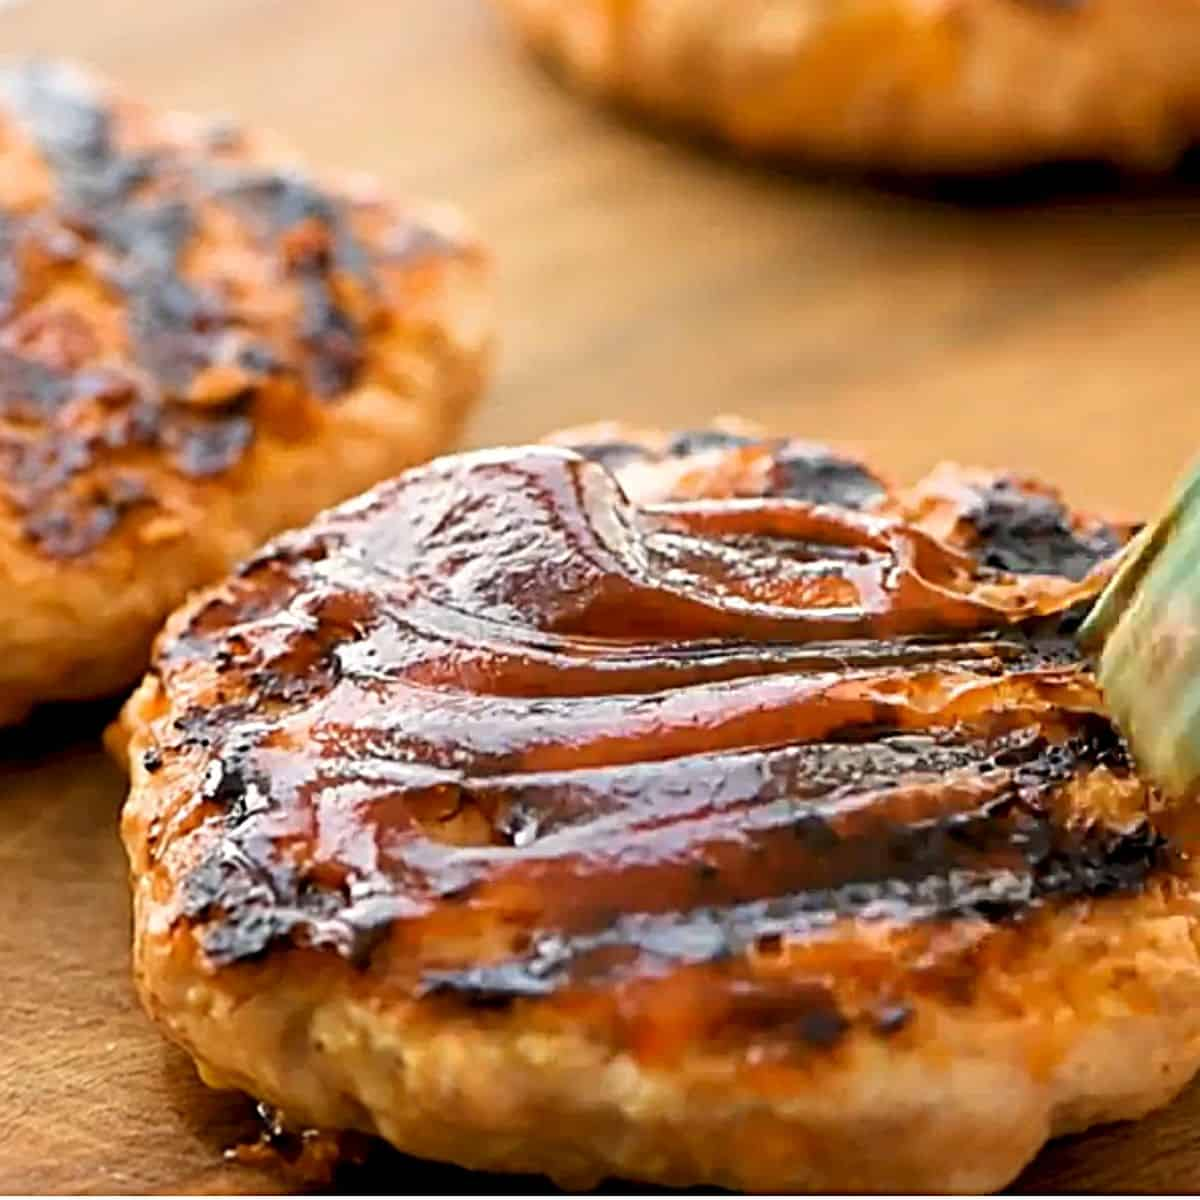 Barbecue sauce being brushed over chicken burgers.